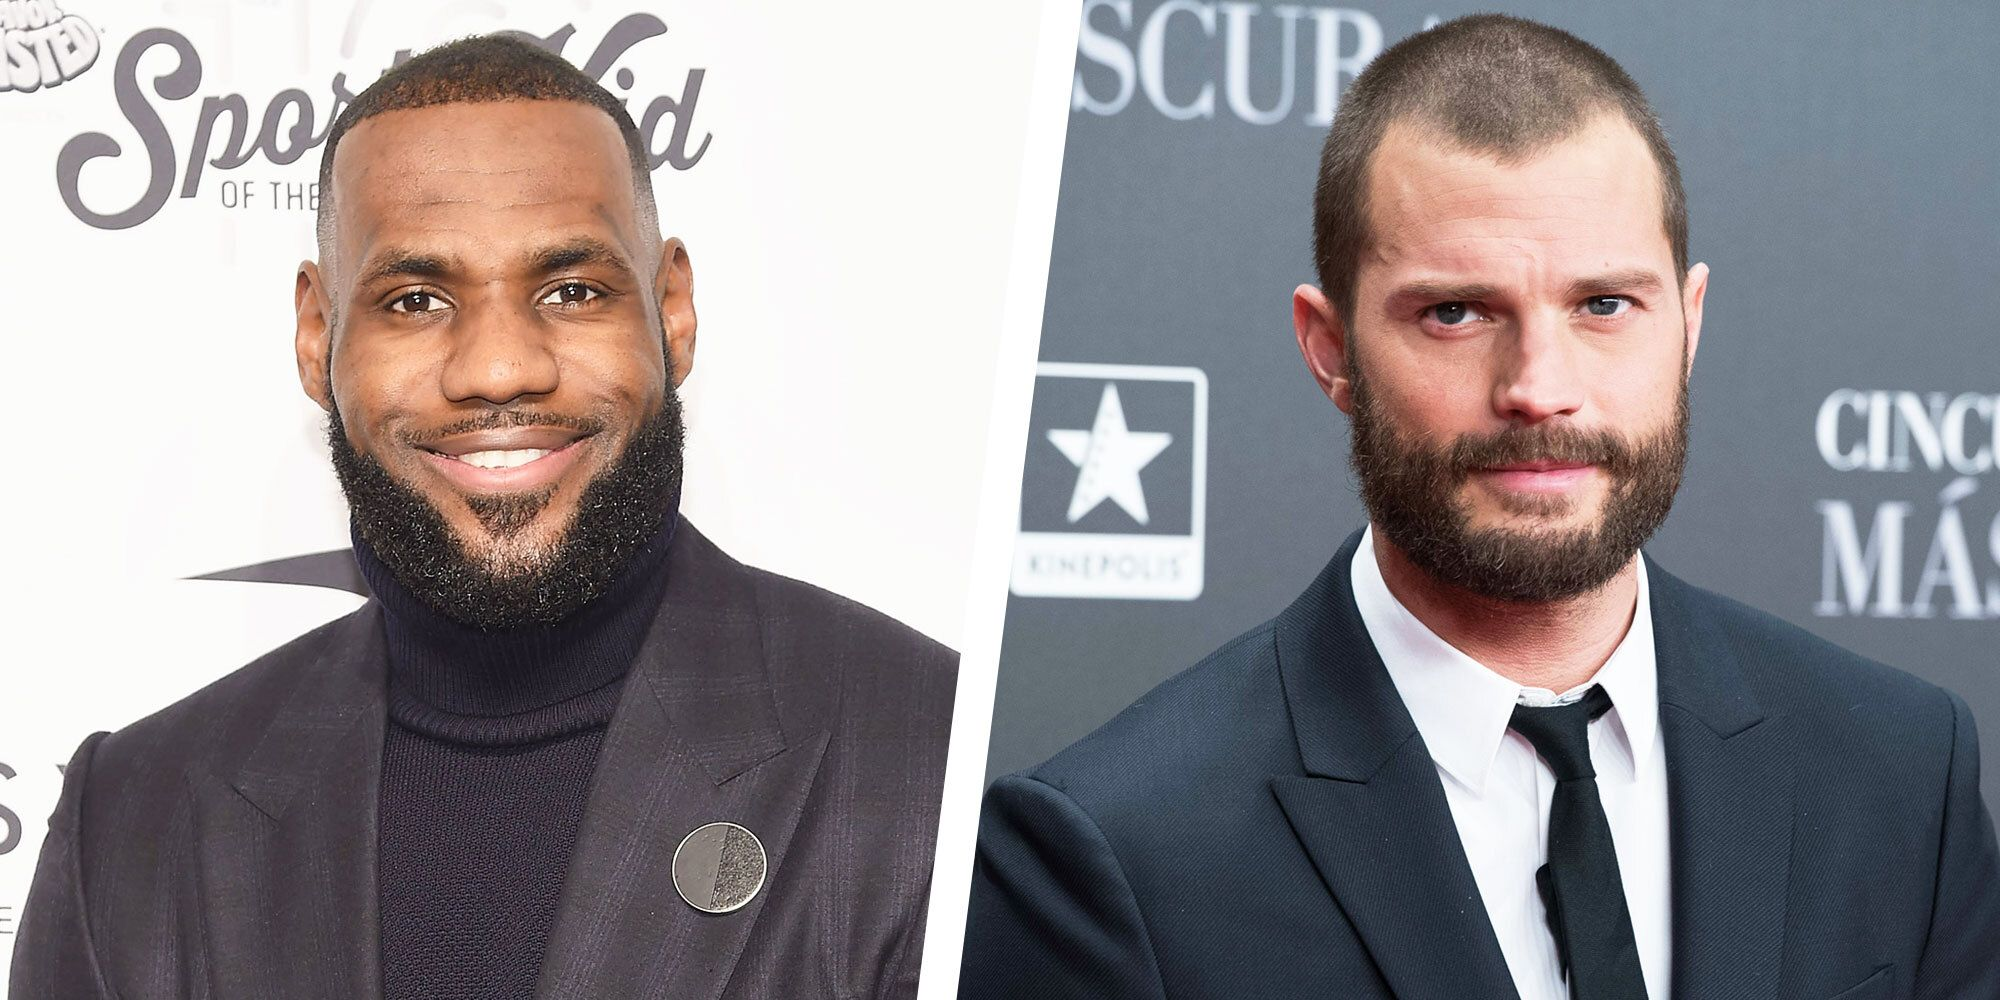 26 Best Beard Styles For Men 2020